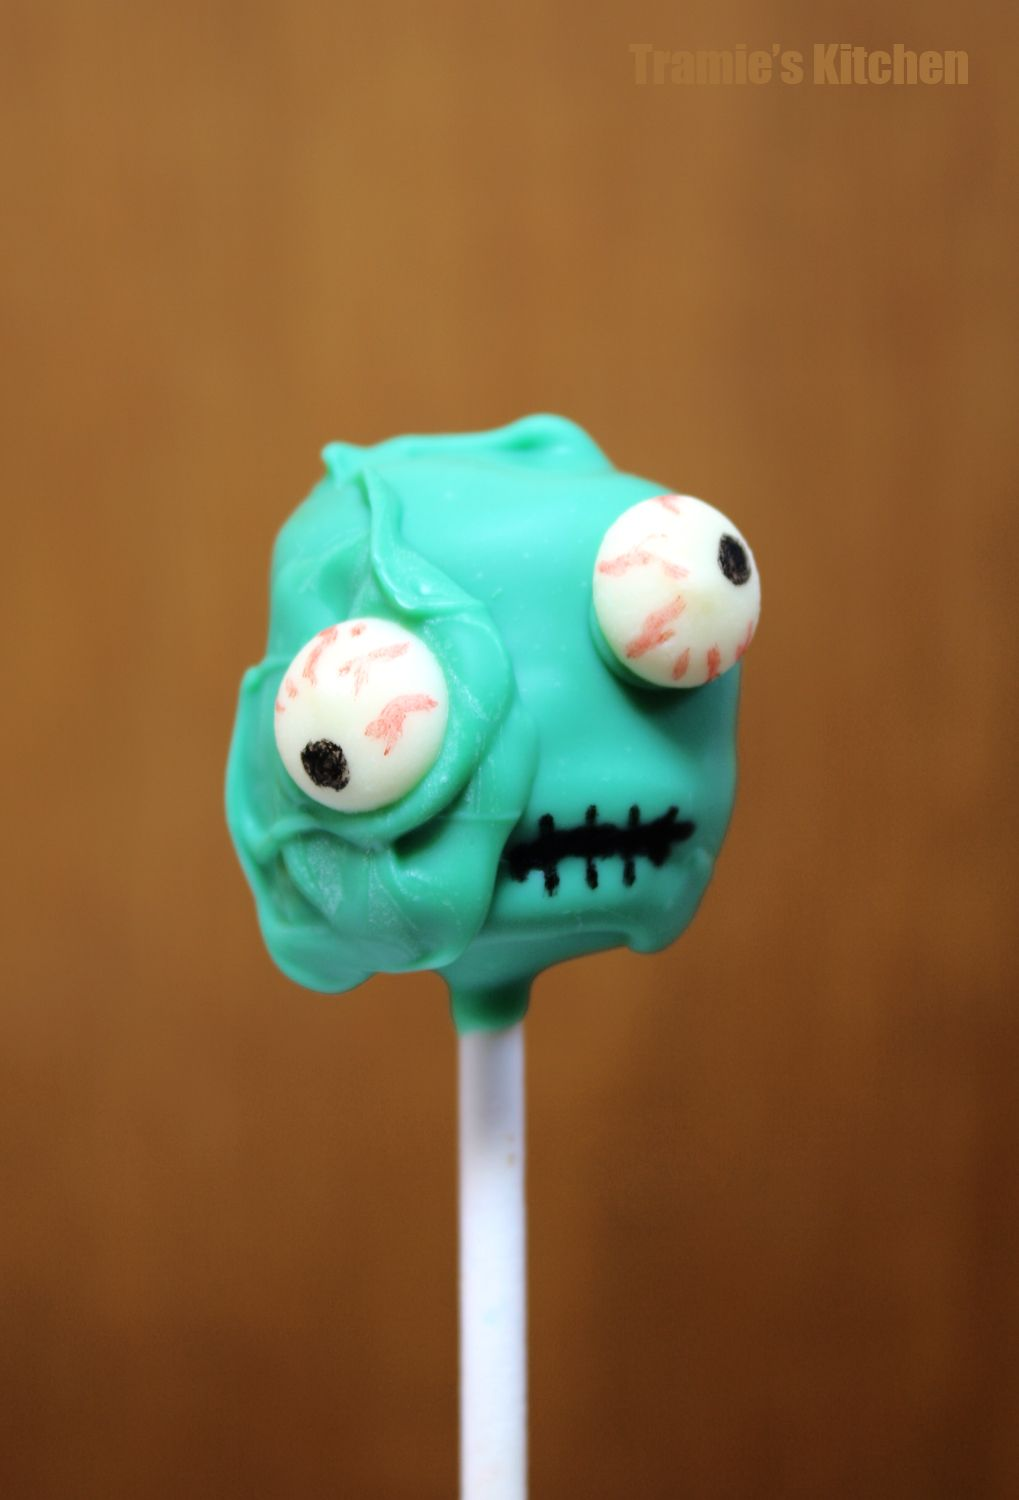 tramie's kitchen: zombie cake pops (this is usually how my regular